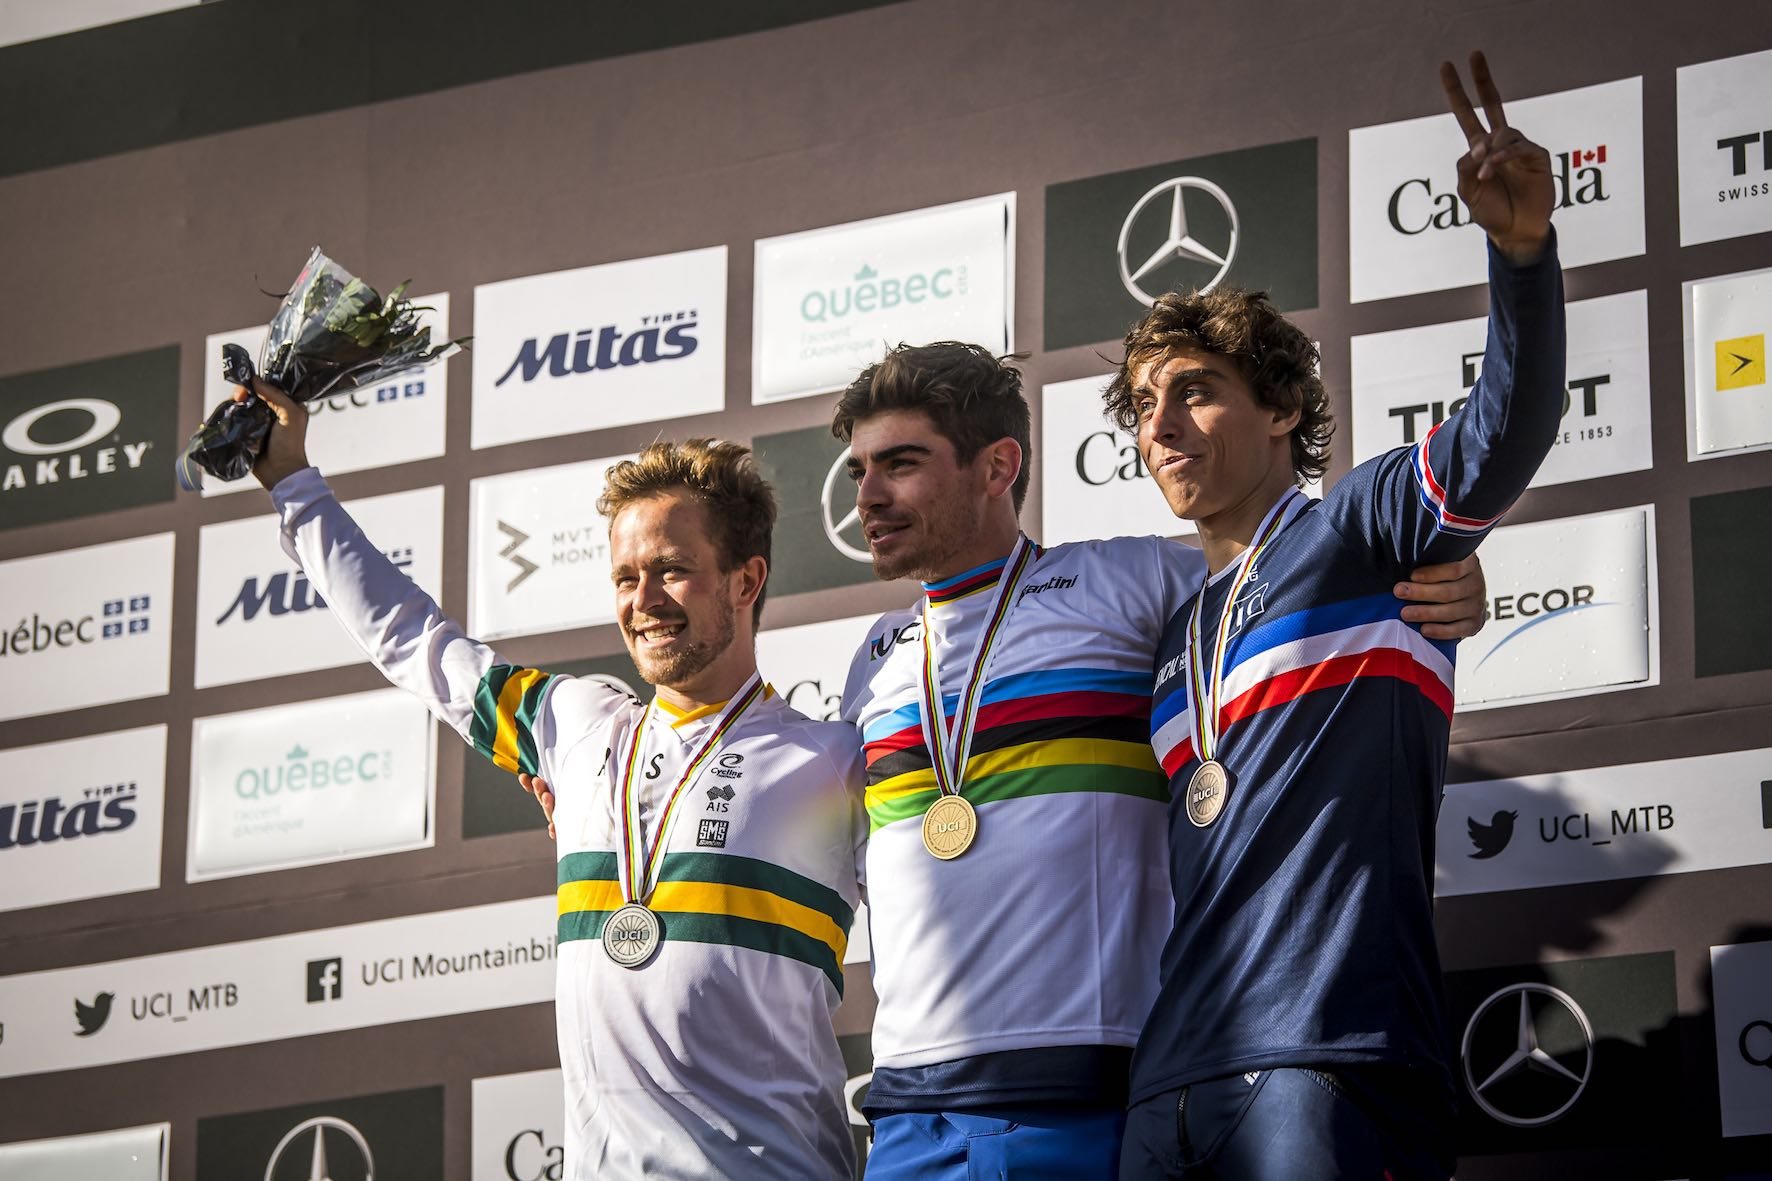 Mens podium from the 2019 UCI Downhill MTB World Championship in Mont-Sainte-Anne